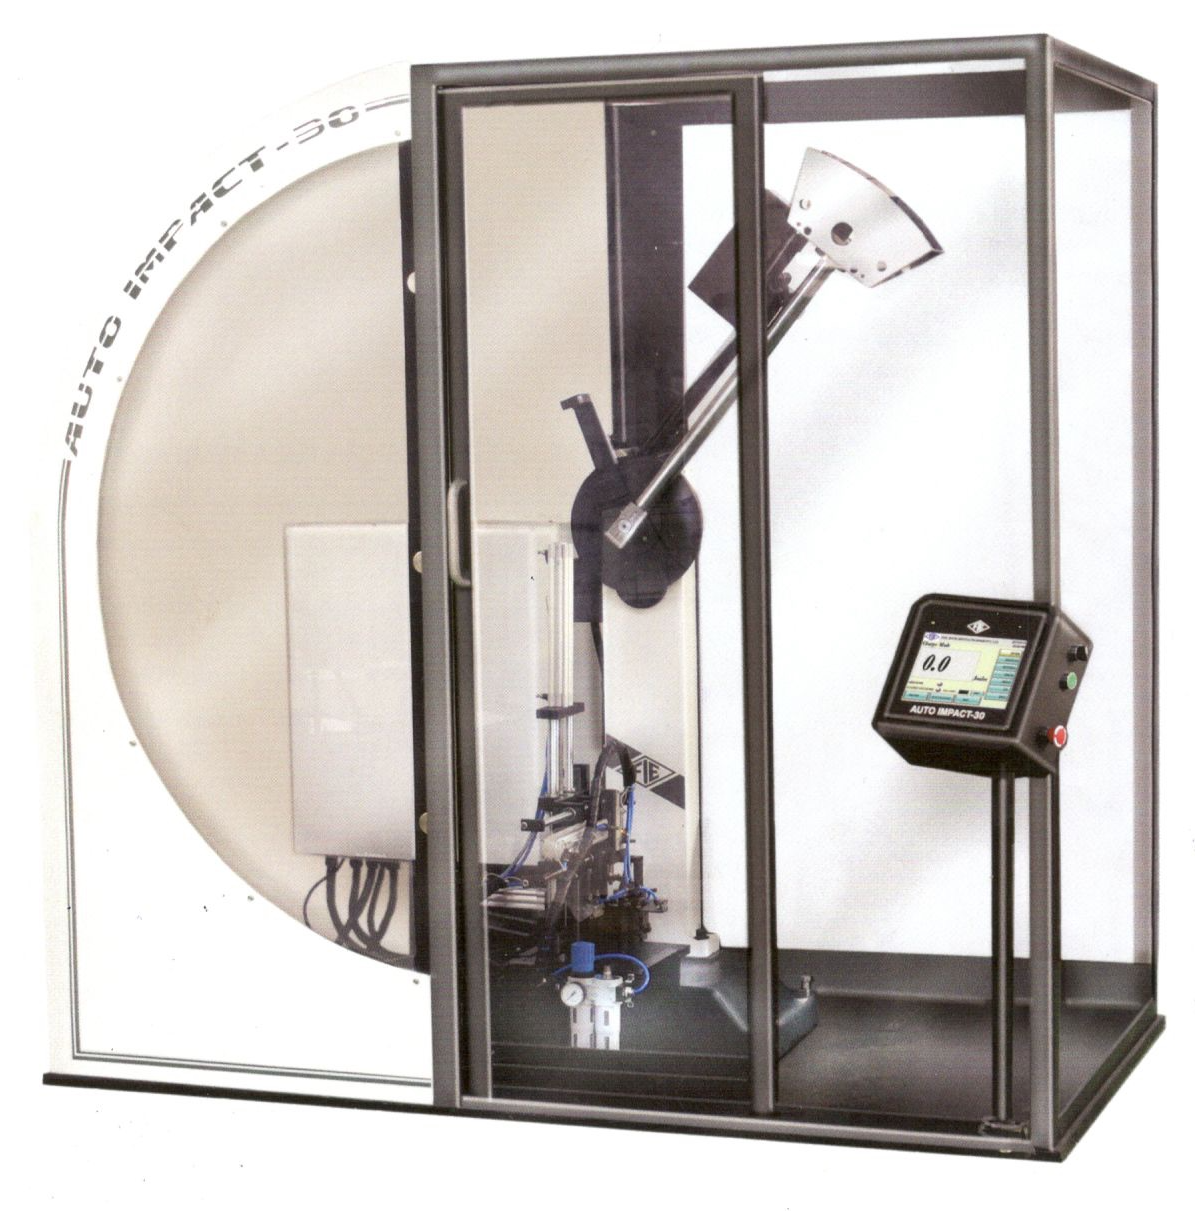 Material testing machines service providers